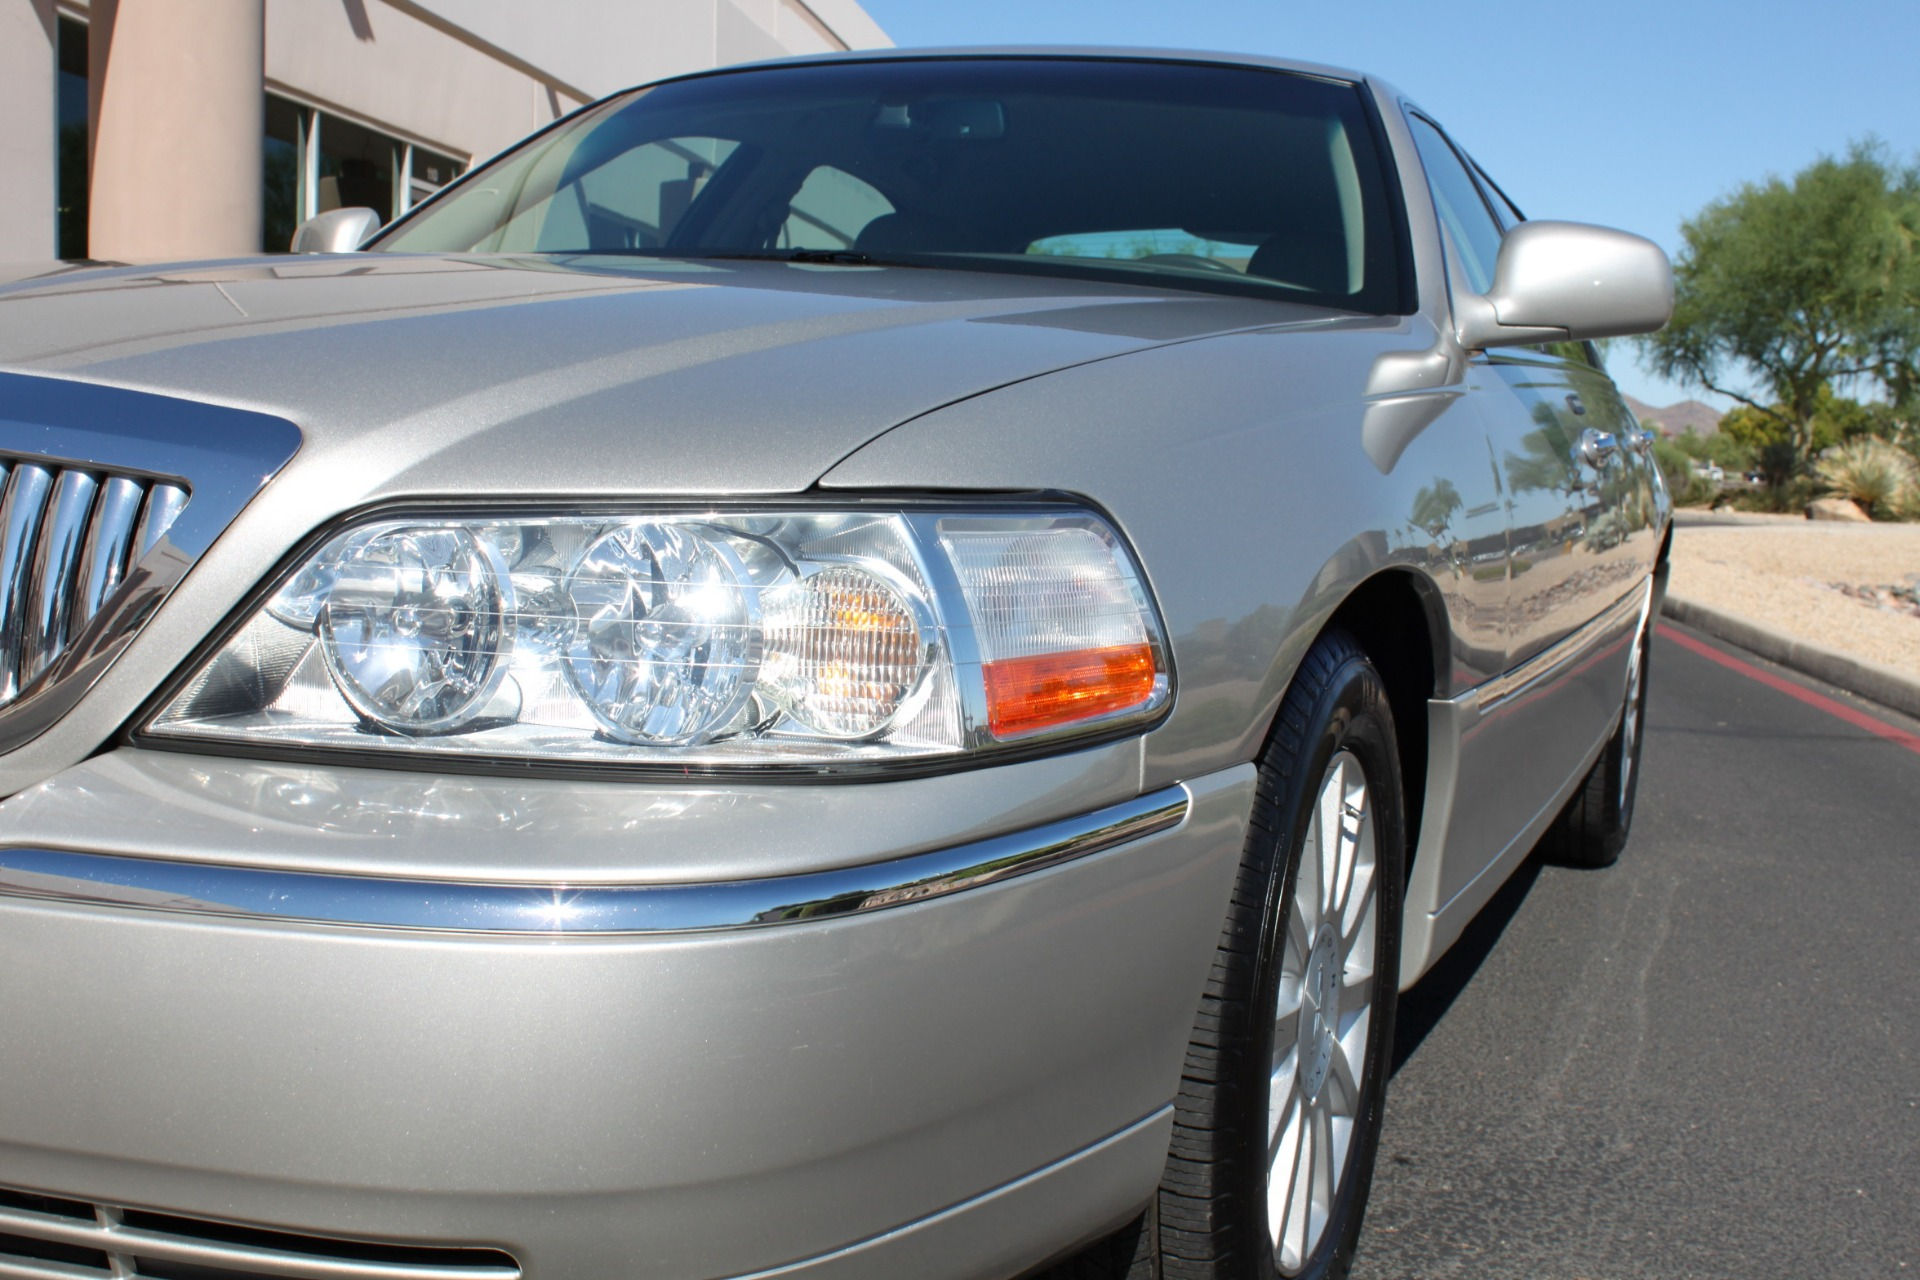 Used-2006-Lincoln-Town-Car-Signature-Lexus